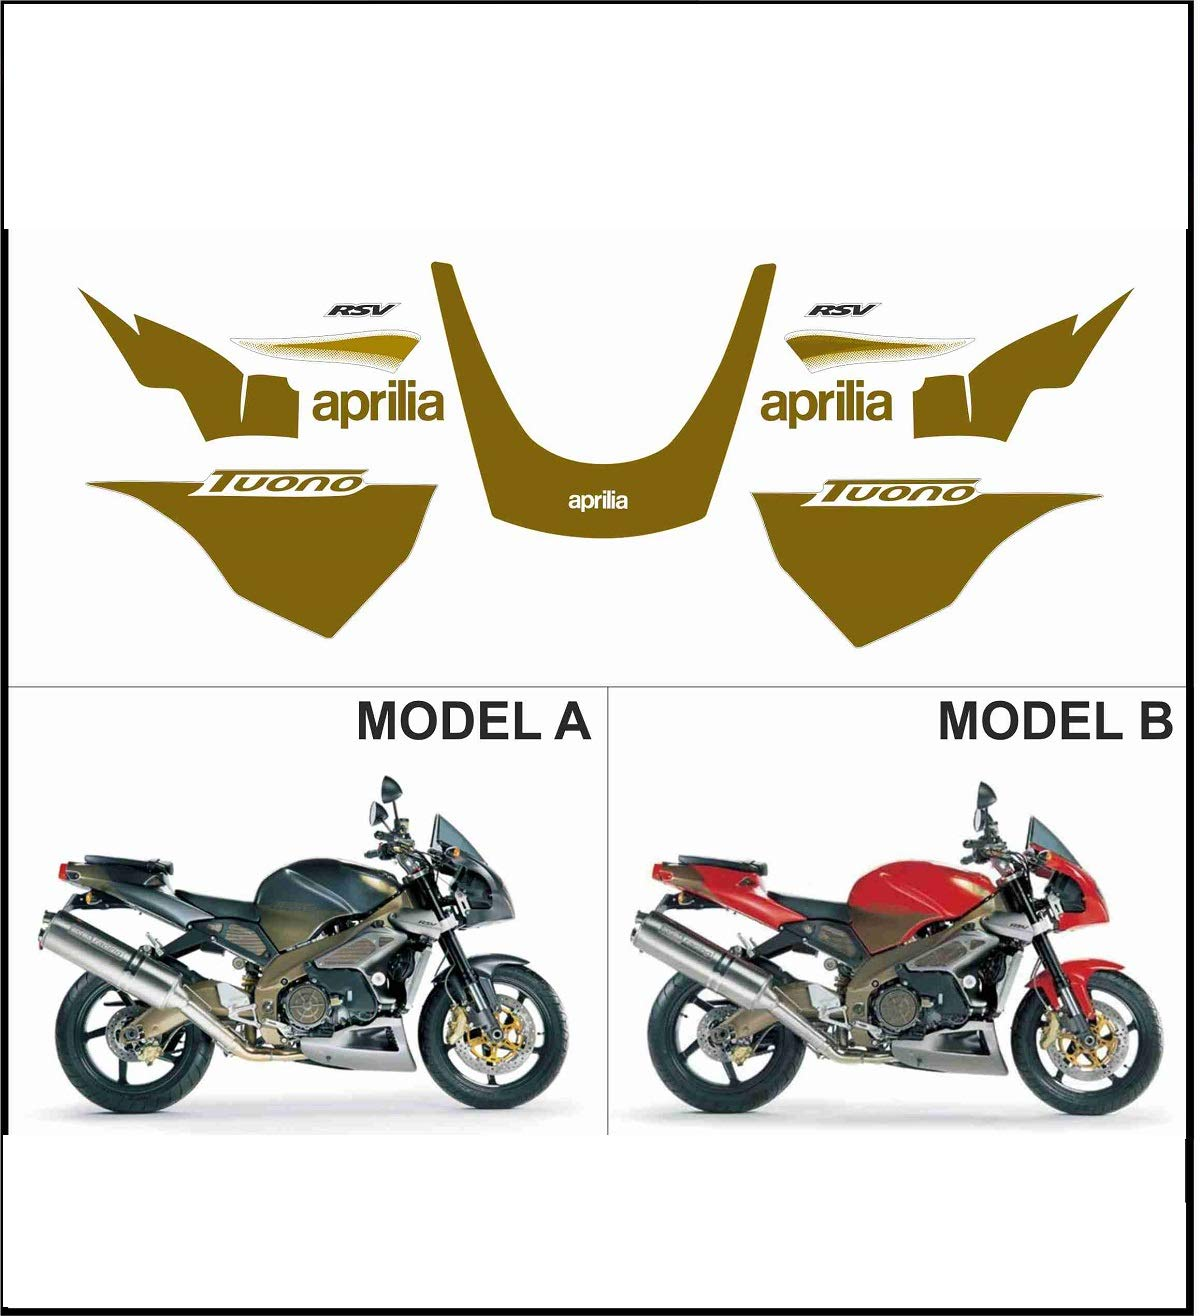 Kit adesivi decal stikers aprilia tuono 1000 2003 (ability